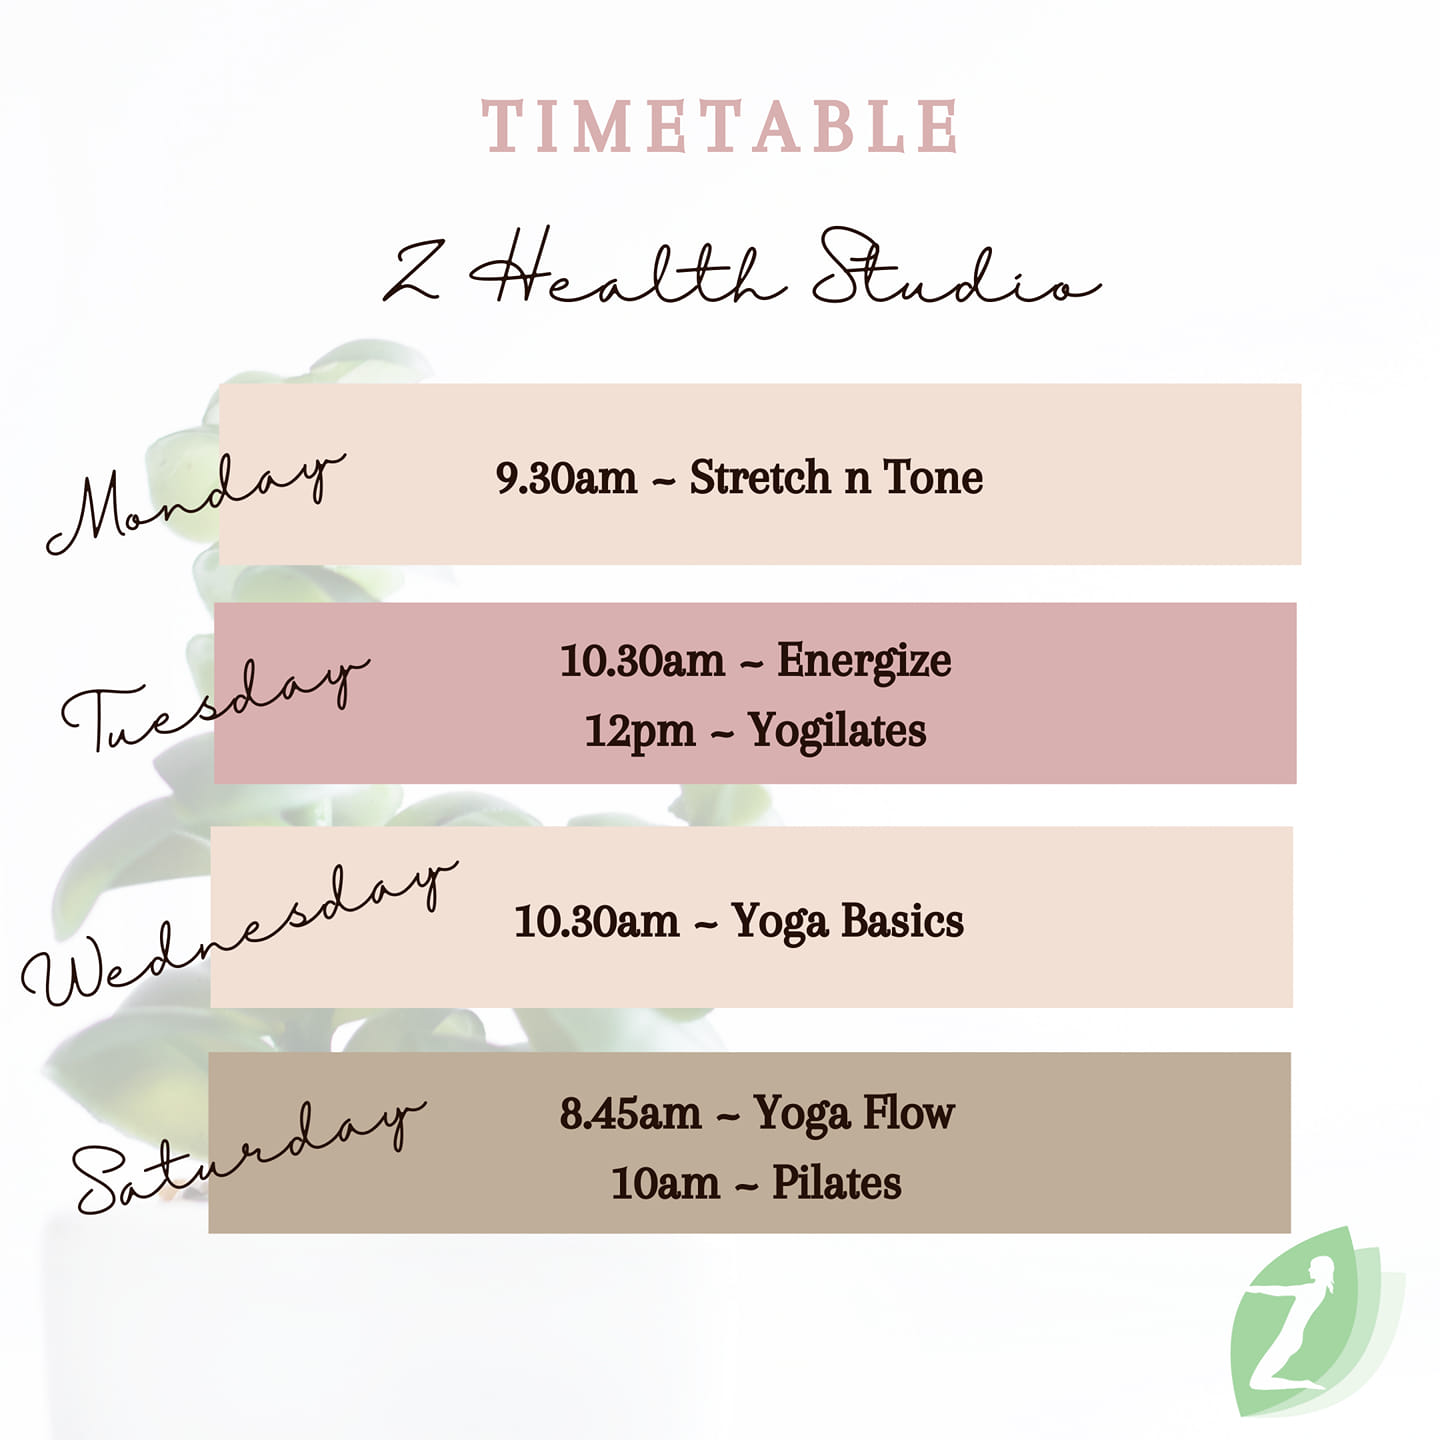 Timetable book with several time slots available